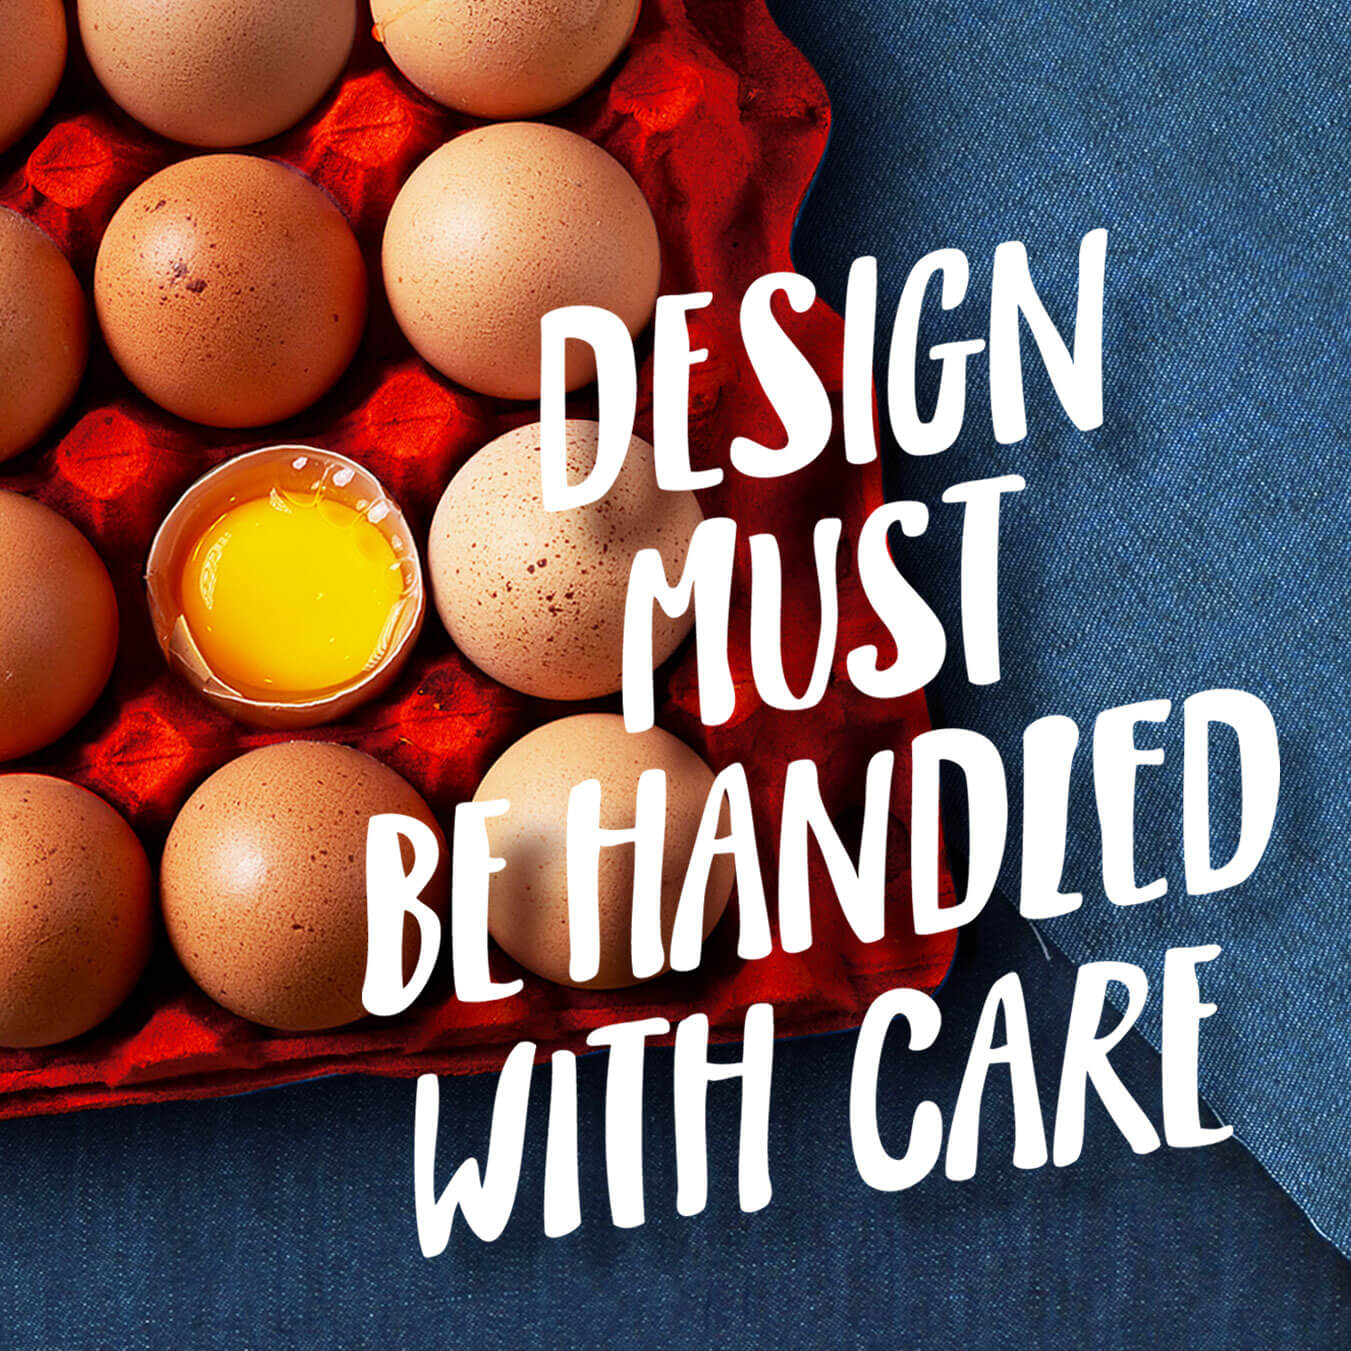 design must be handled with care